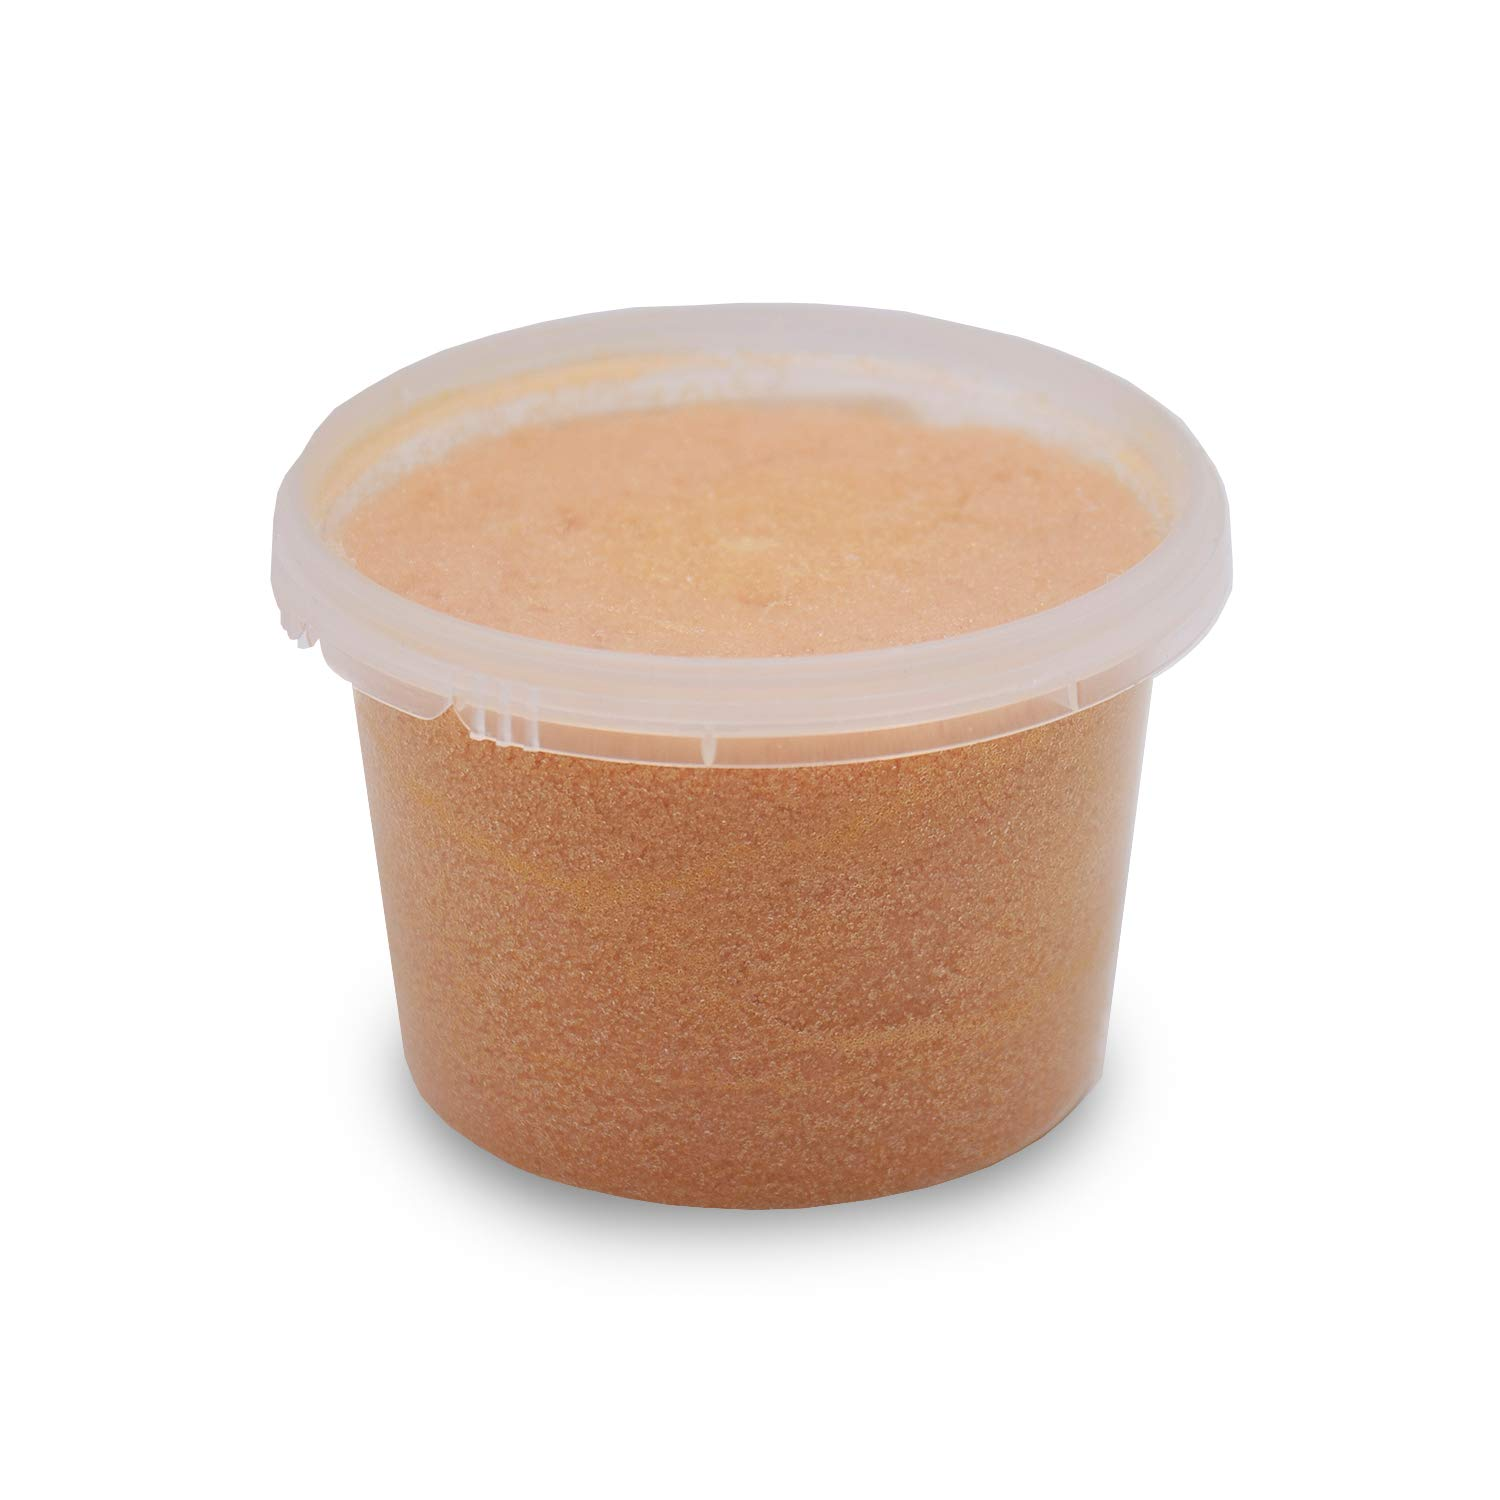 Amazon.com : Cotton Cravings Dulce de Leche Deluxe Cotton Candy Sugar Mix (1 lb) - All Natural Gourmet Flavors Made with Pure Cane Sugar, ...